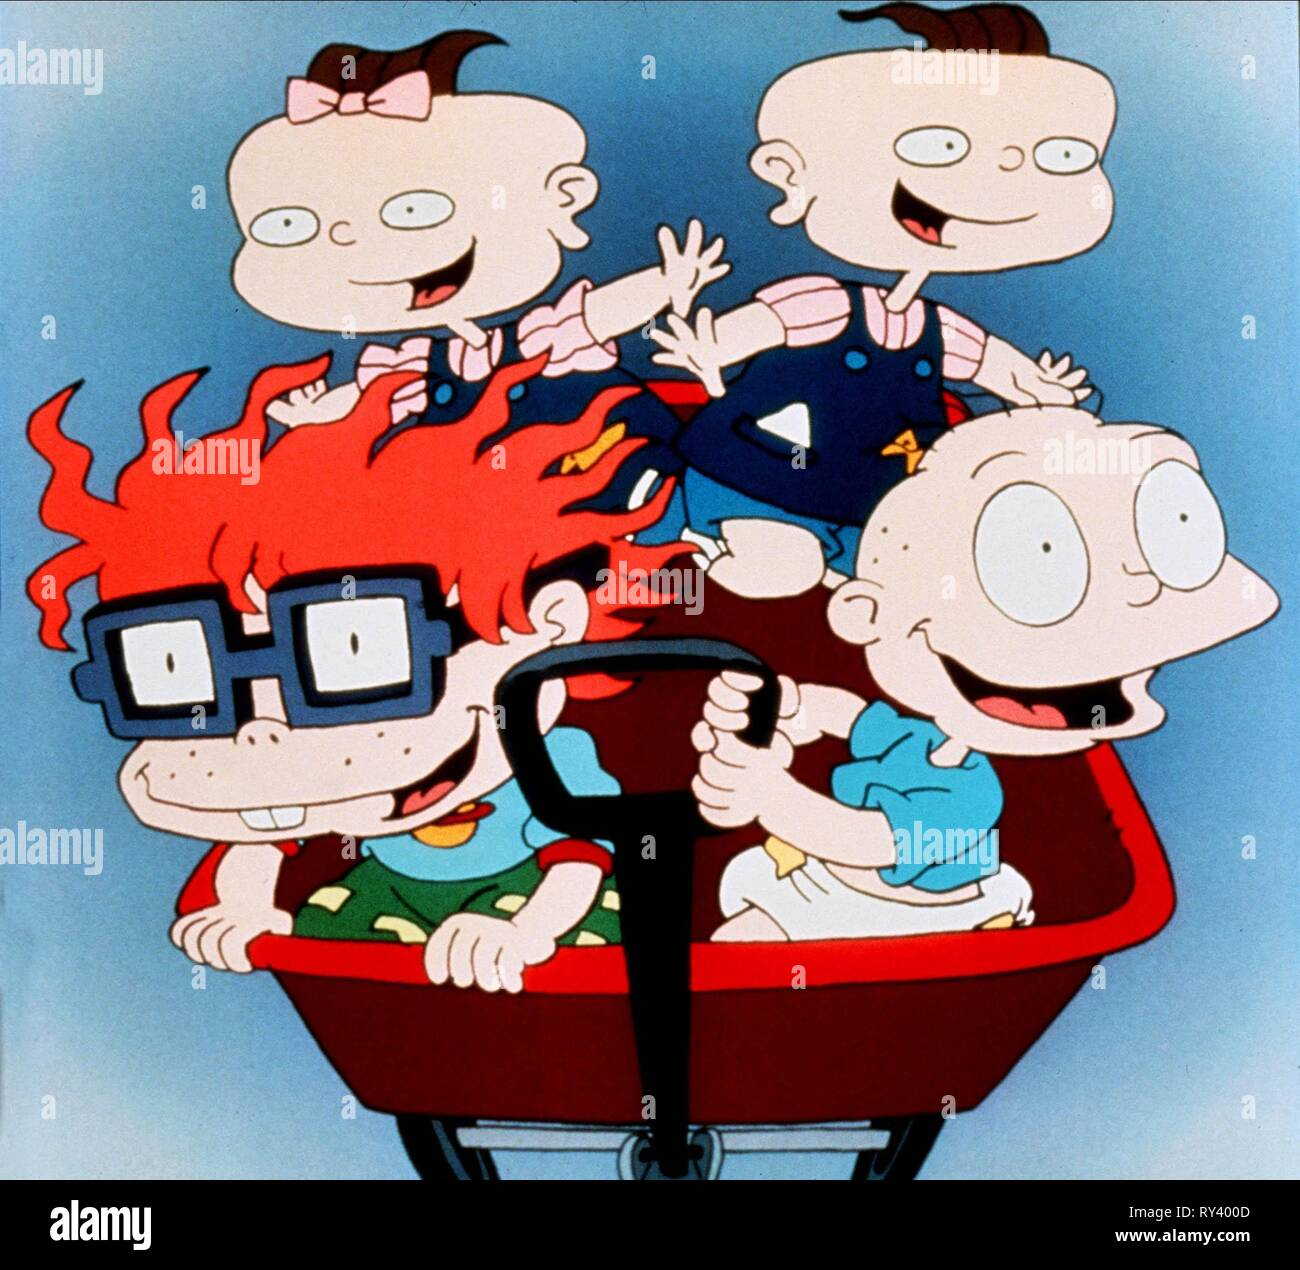 Rugrats Stock Photos & Rugrats Stock Images - Alamy